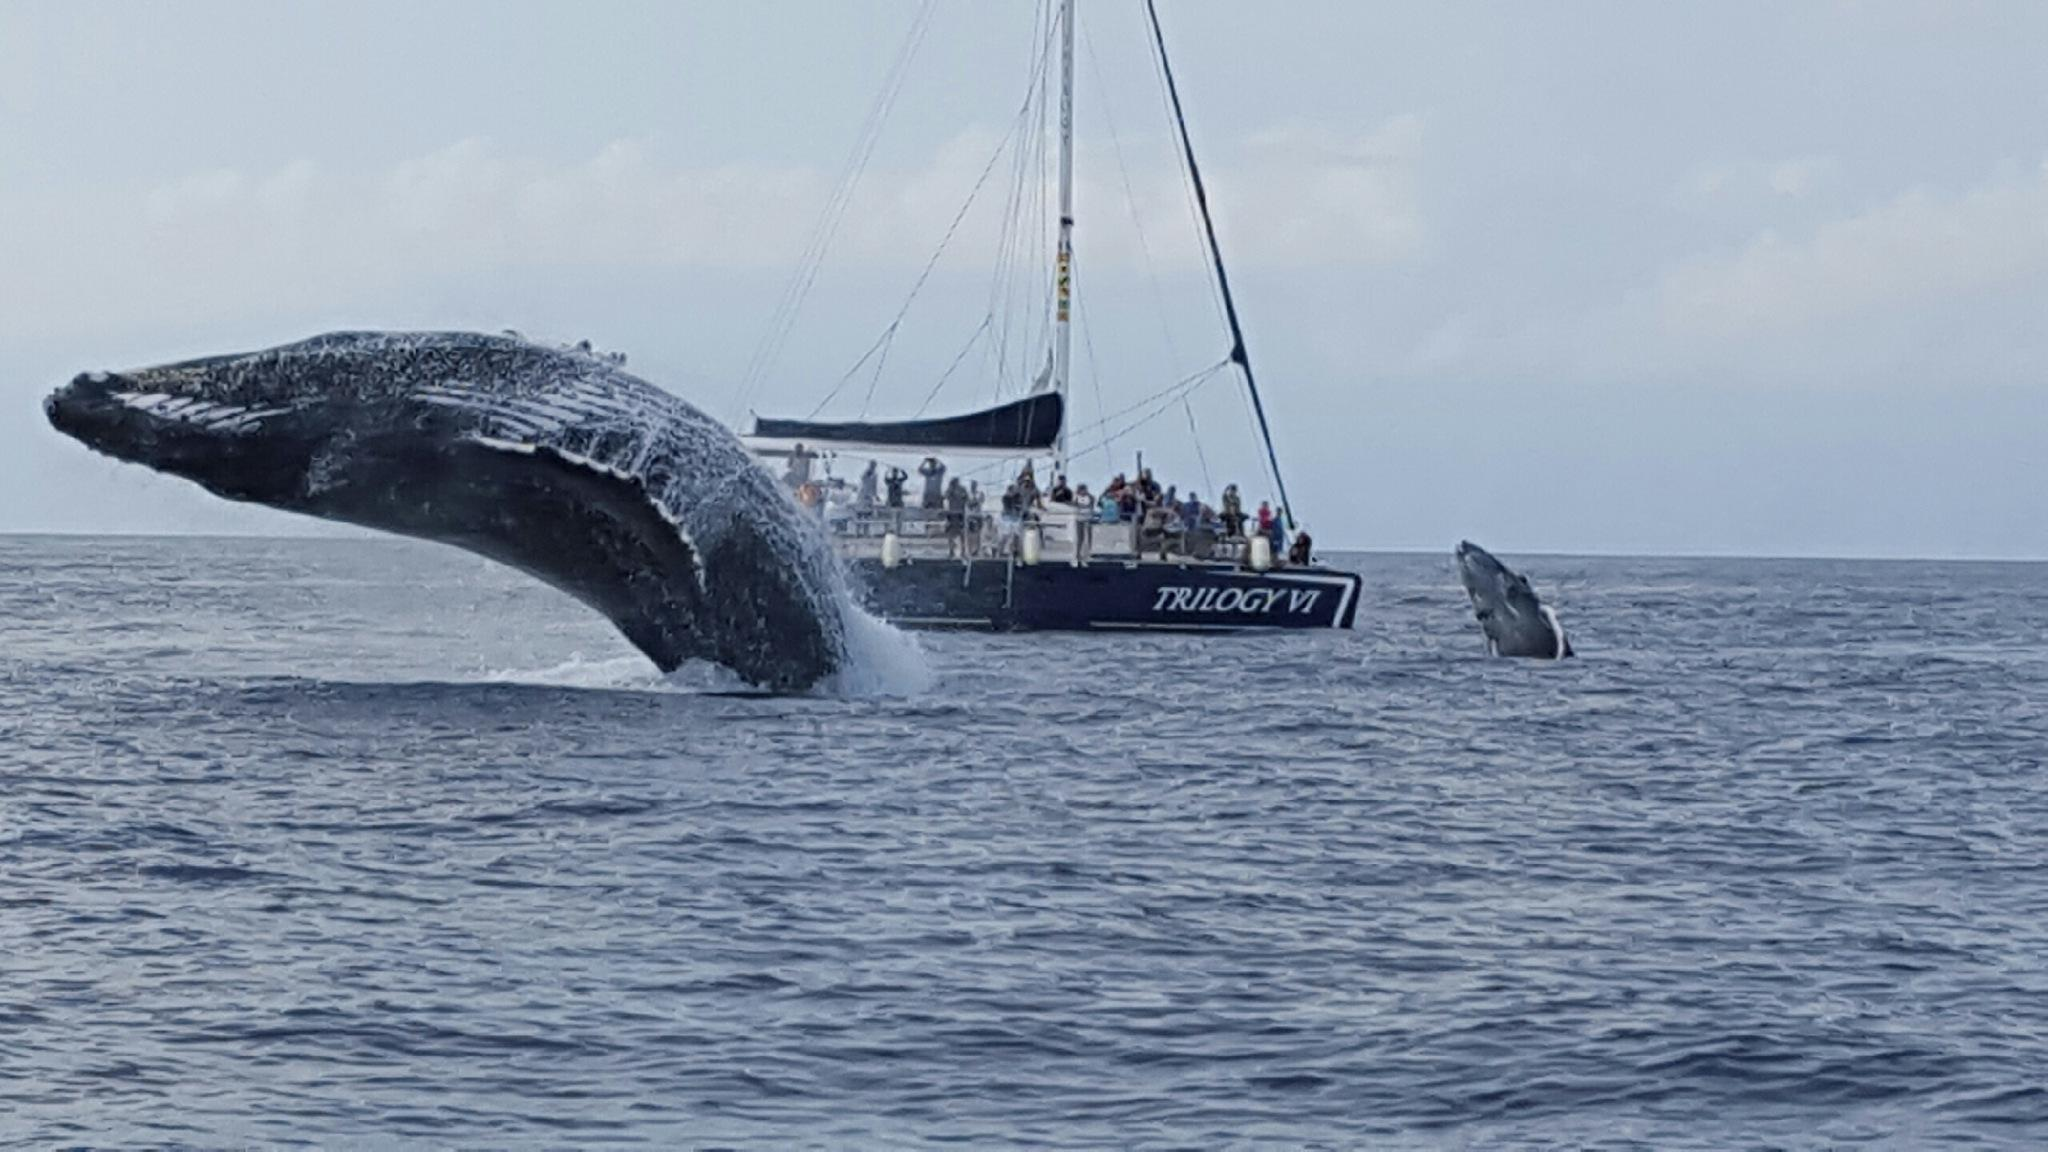 Double Breach on a whale watch in Maui